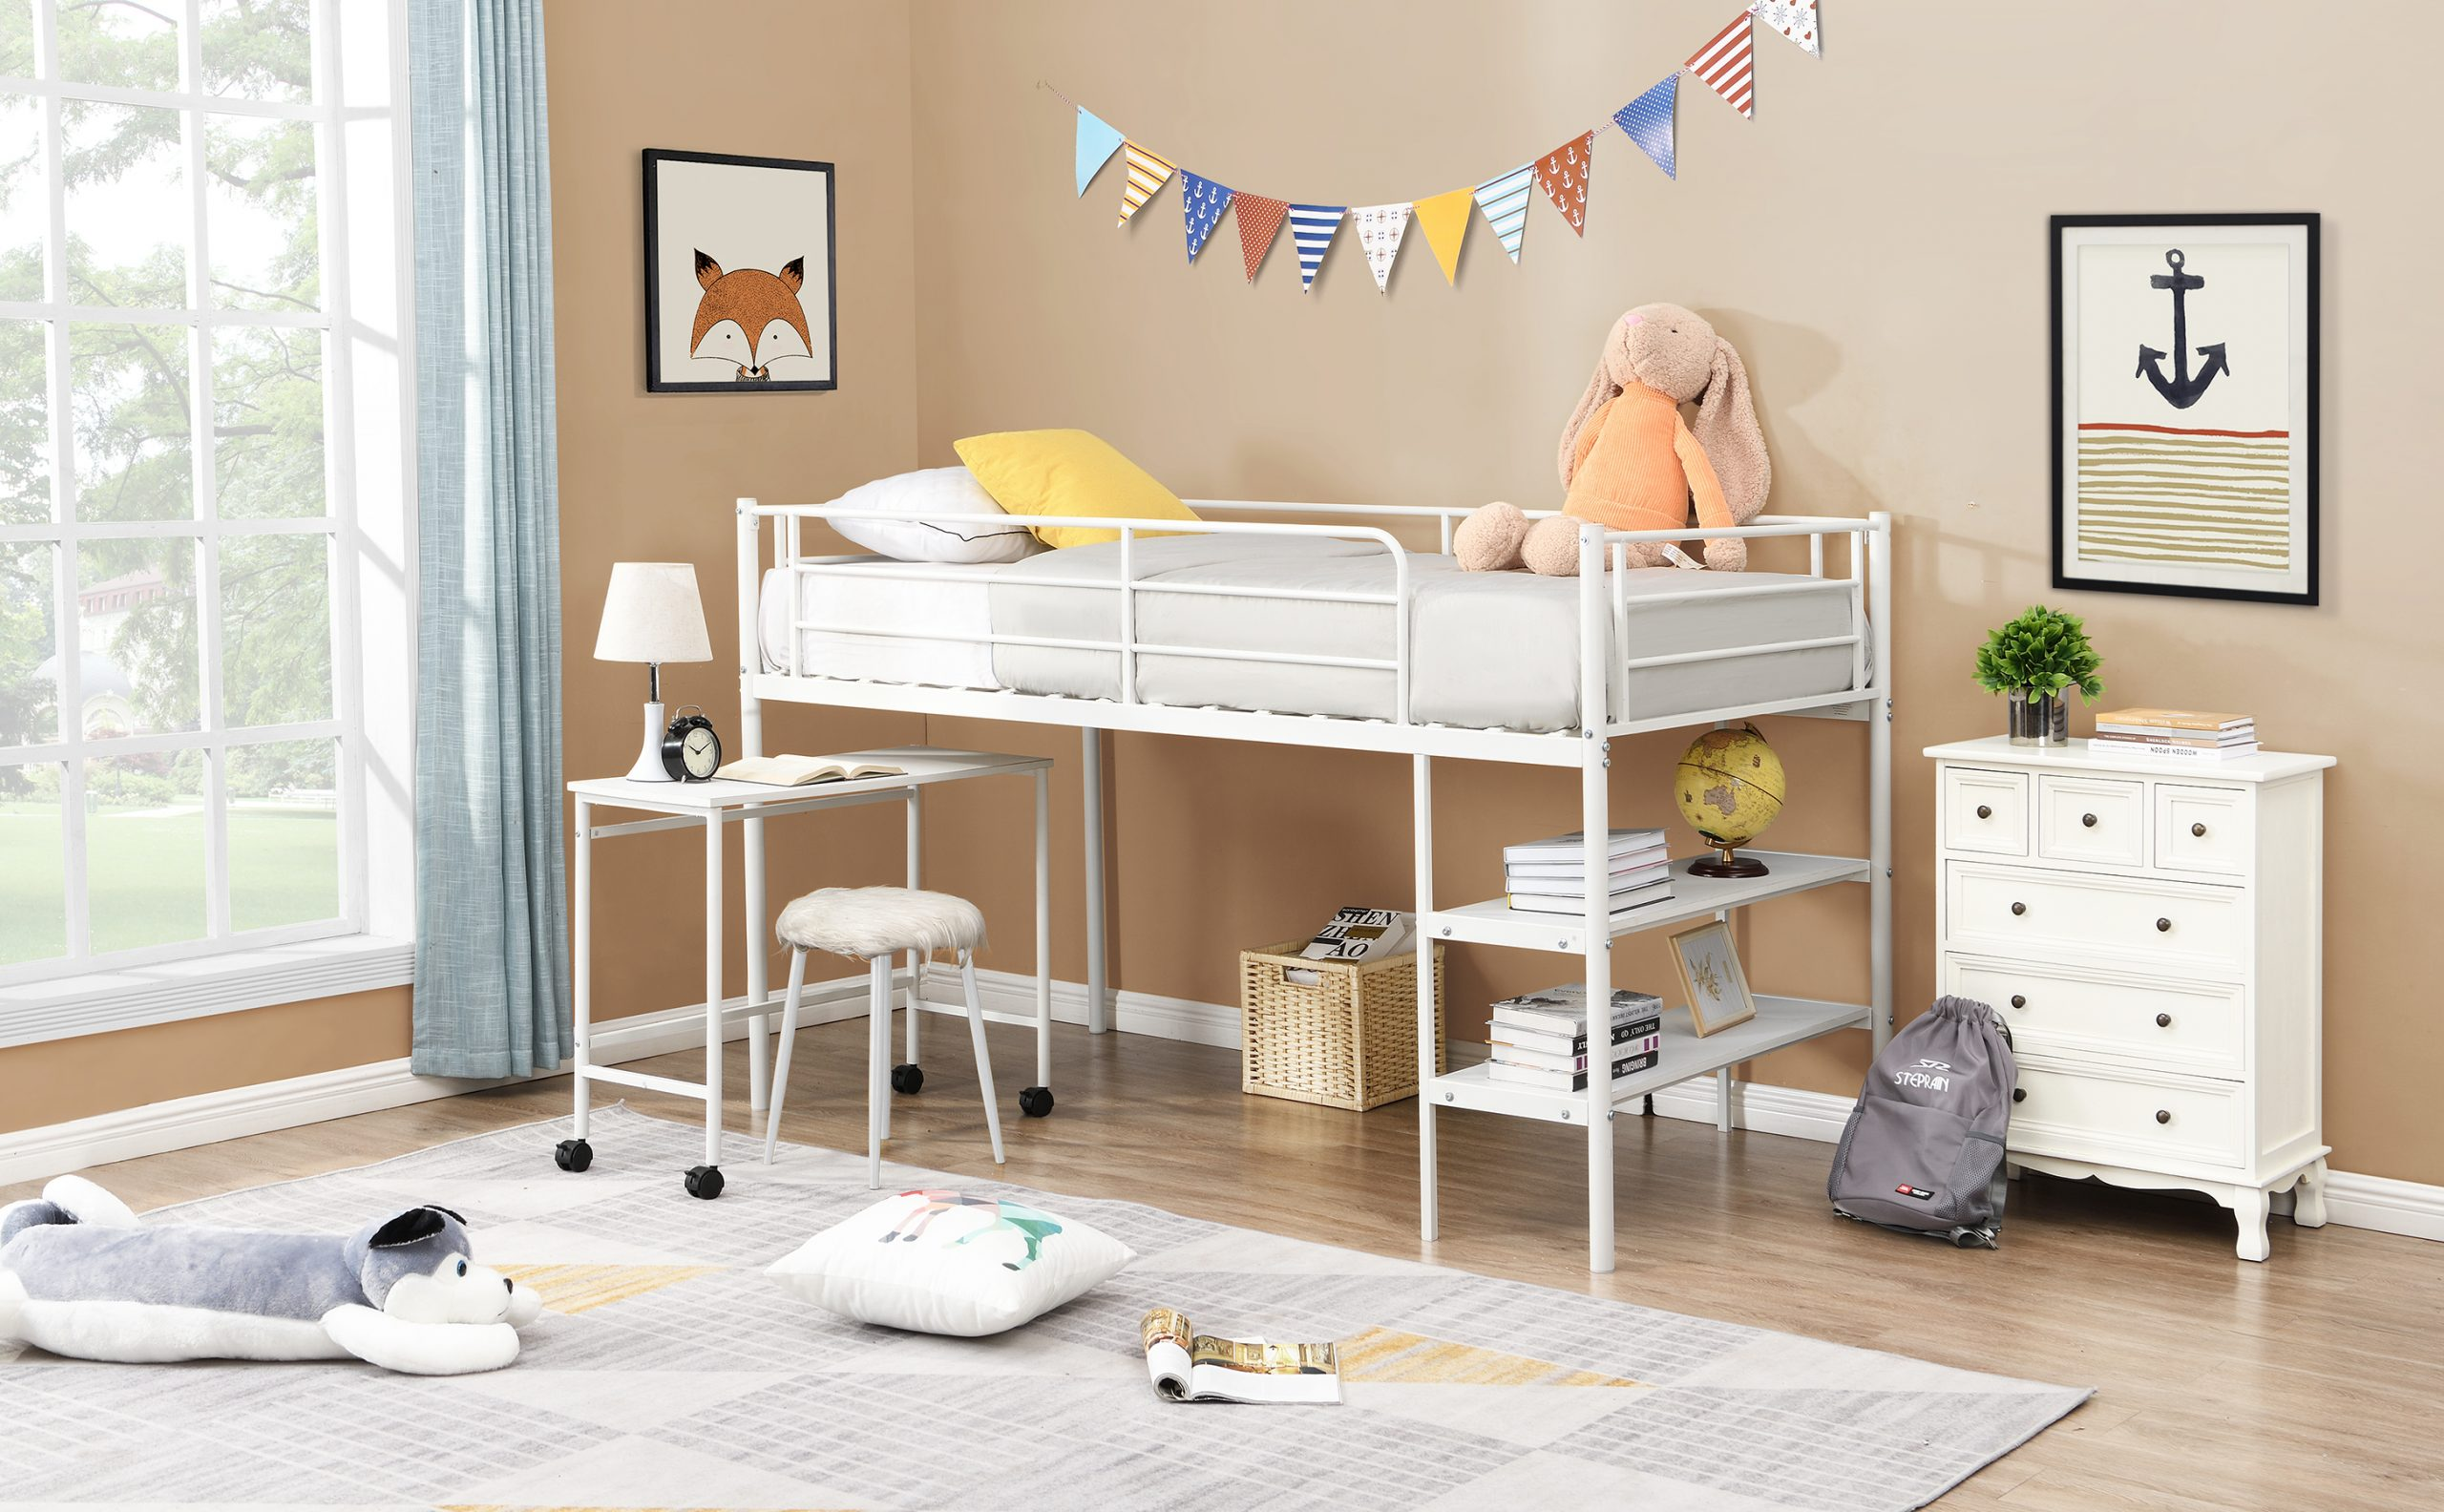 Twin Size Metal Low Loft Bed With Shelves And Built-in-Desk